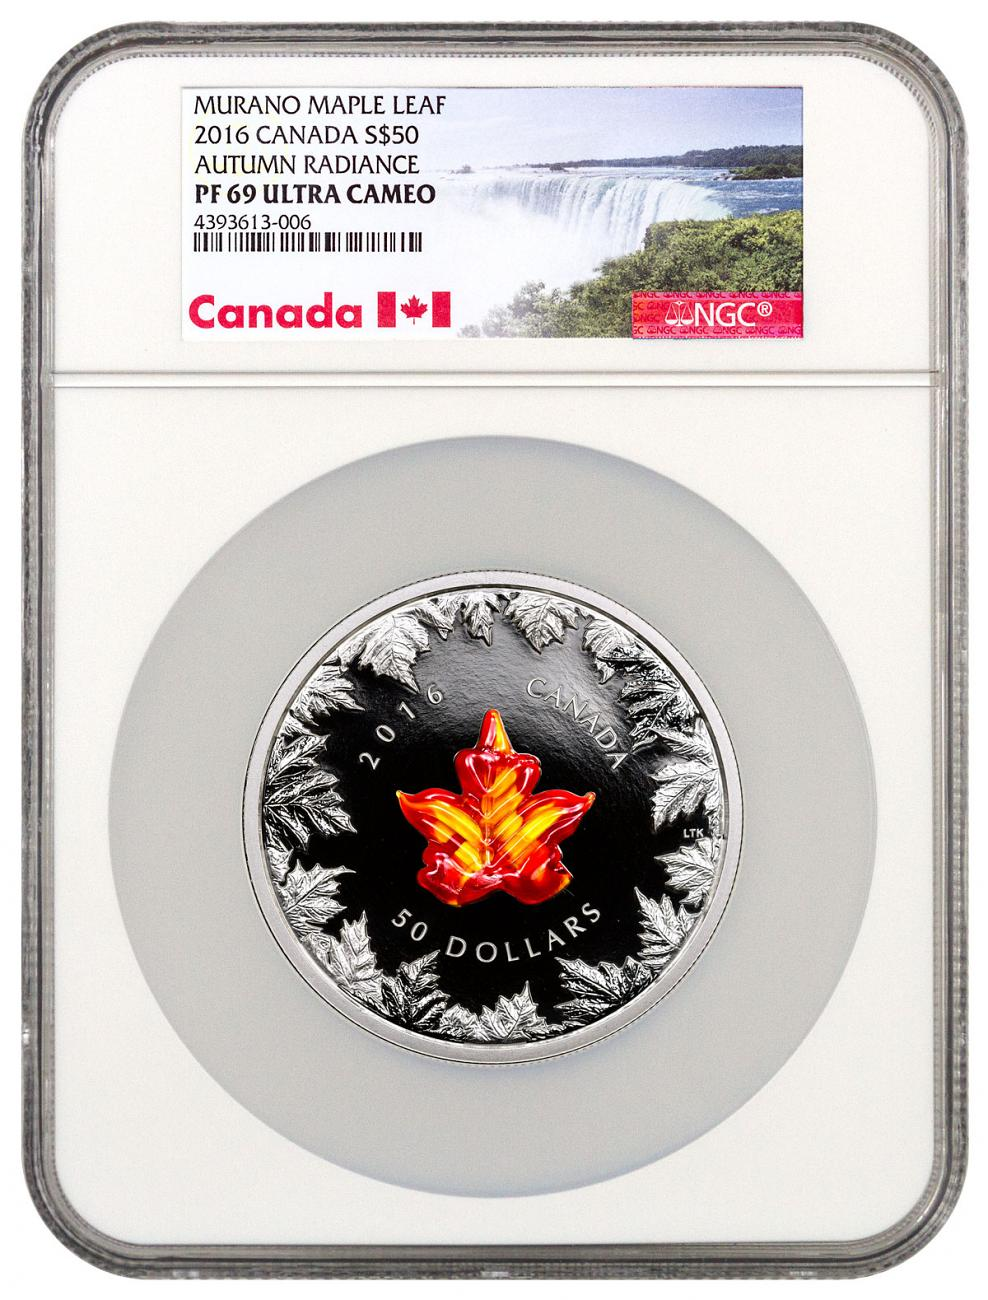 2016 Canada Murano Glass Maple Leaf - Autumn Radiance 5 oz Silver Proof $50 NGC PF69 UC Exclusive Canada Label